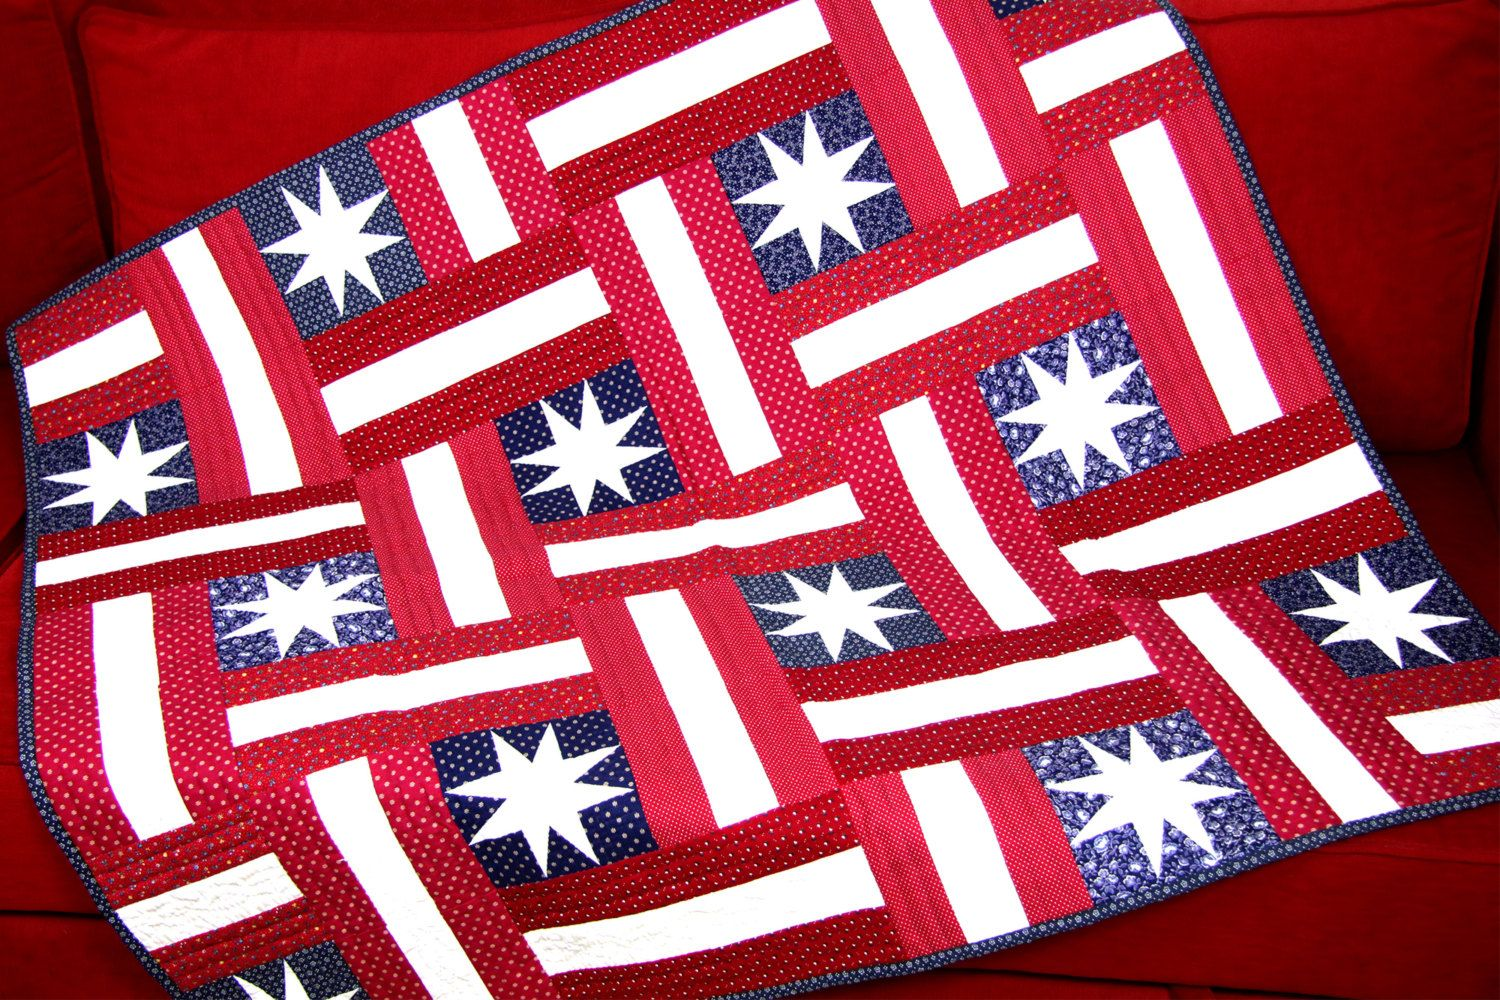 American Quilt, USA Quilt Patchwork, American Blanket, USA Blanket, Red White Blue, Tablecloth, Stars and Stripes von SolvejgMayerQuilts auf Etsy